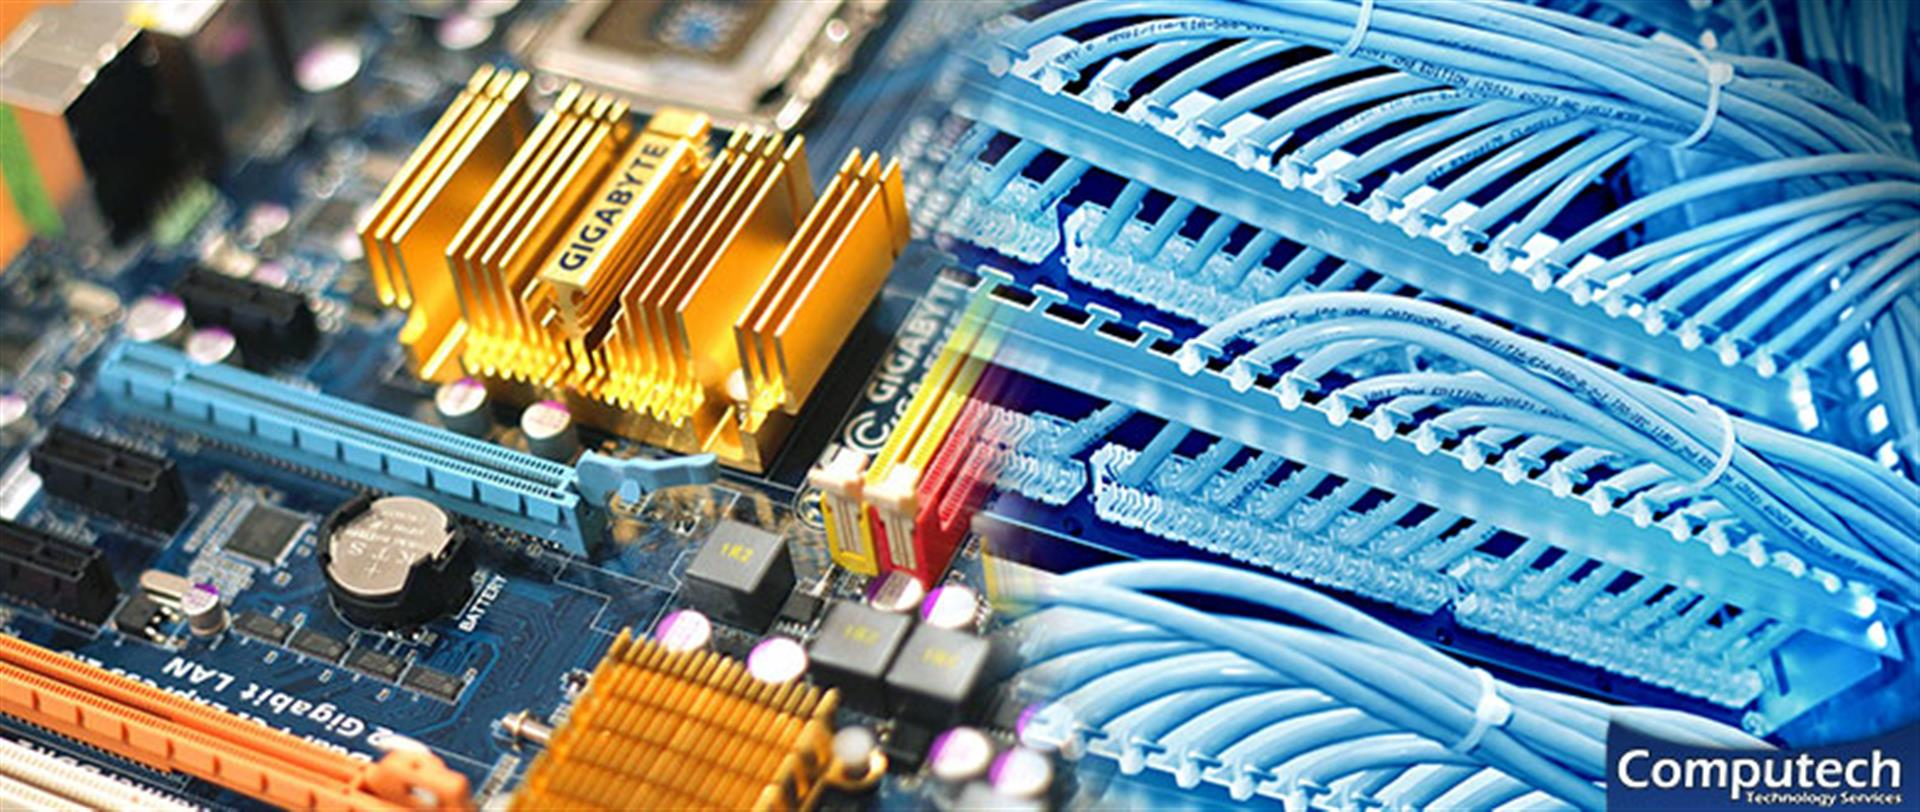 Martin Tennessee On Site PC & Printer Repairs, Networking, Voice & Data Cabling Services